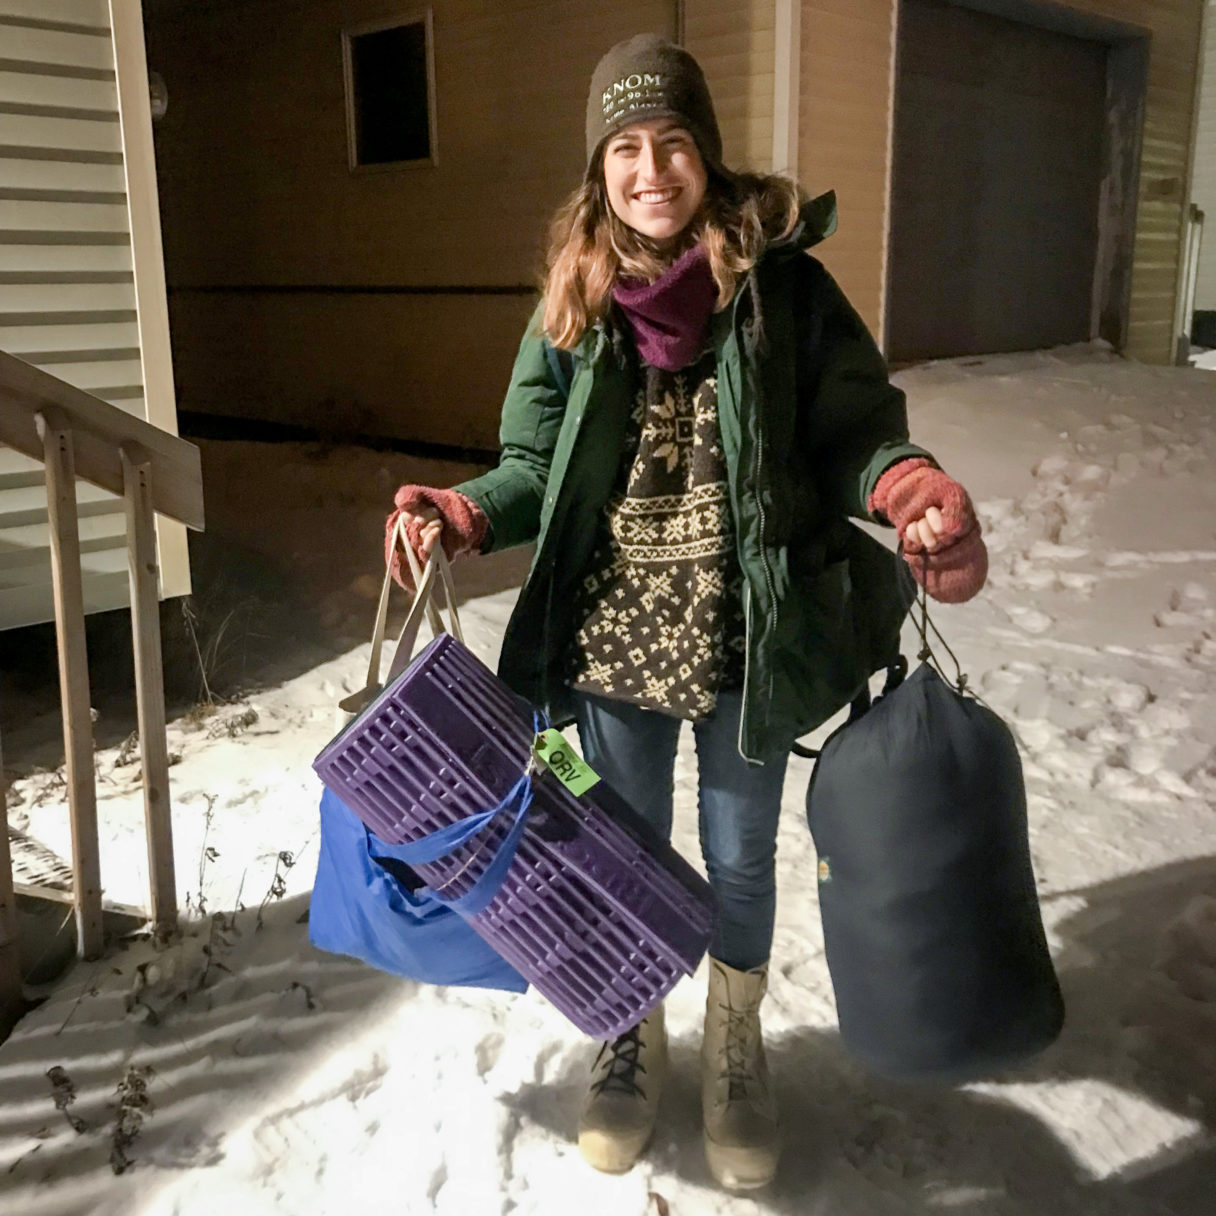 Woman stands smiling on snowy ground at night, holding camping gear and wearing heavy winter clothes.